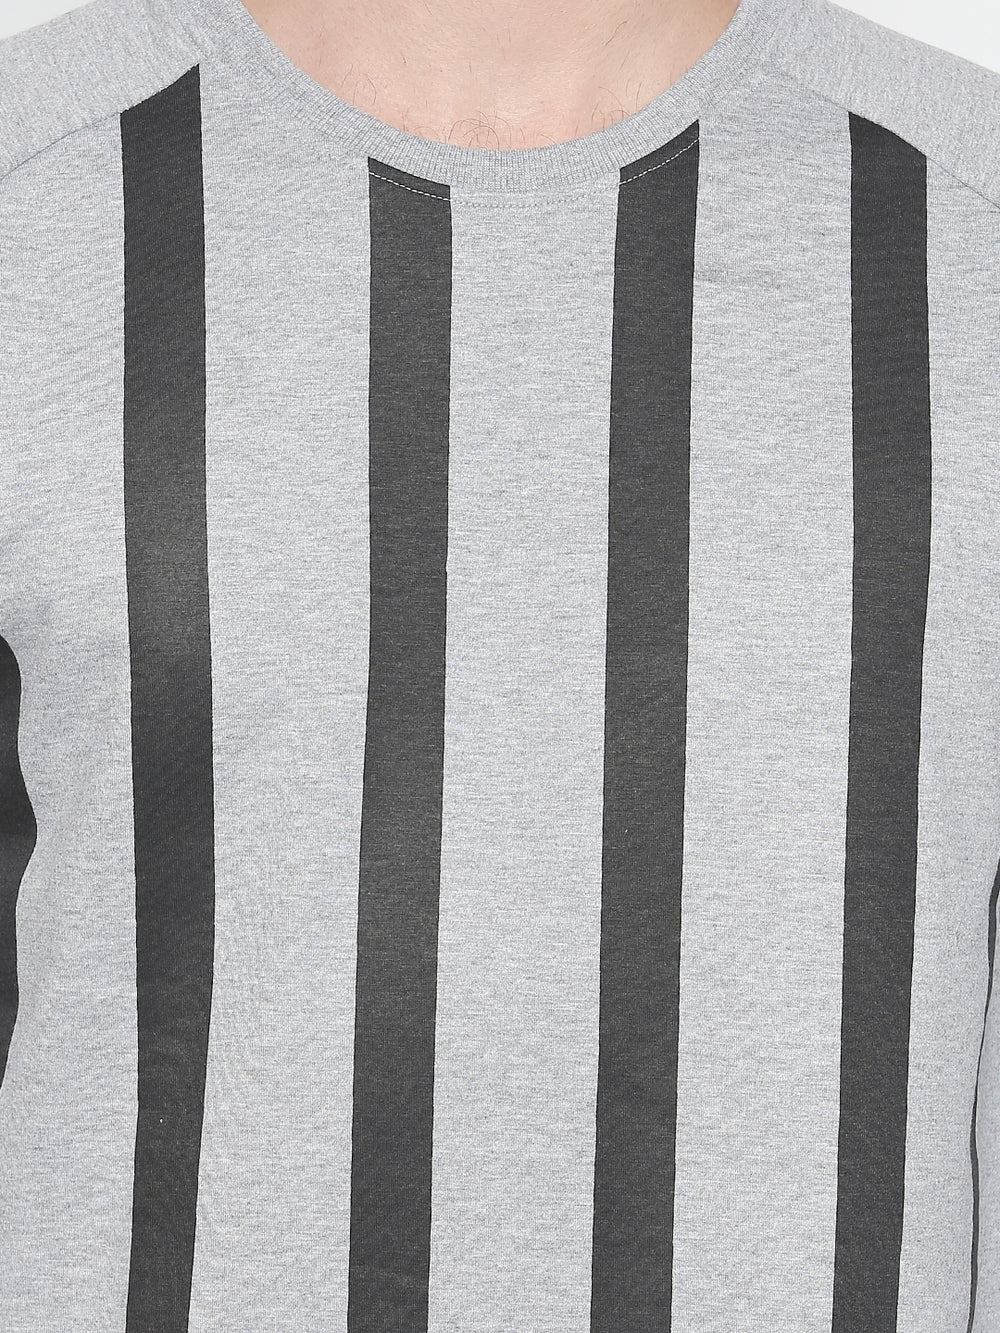 Grey Vertical striped Full sleeve T-shirt